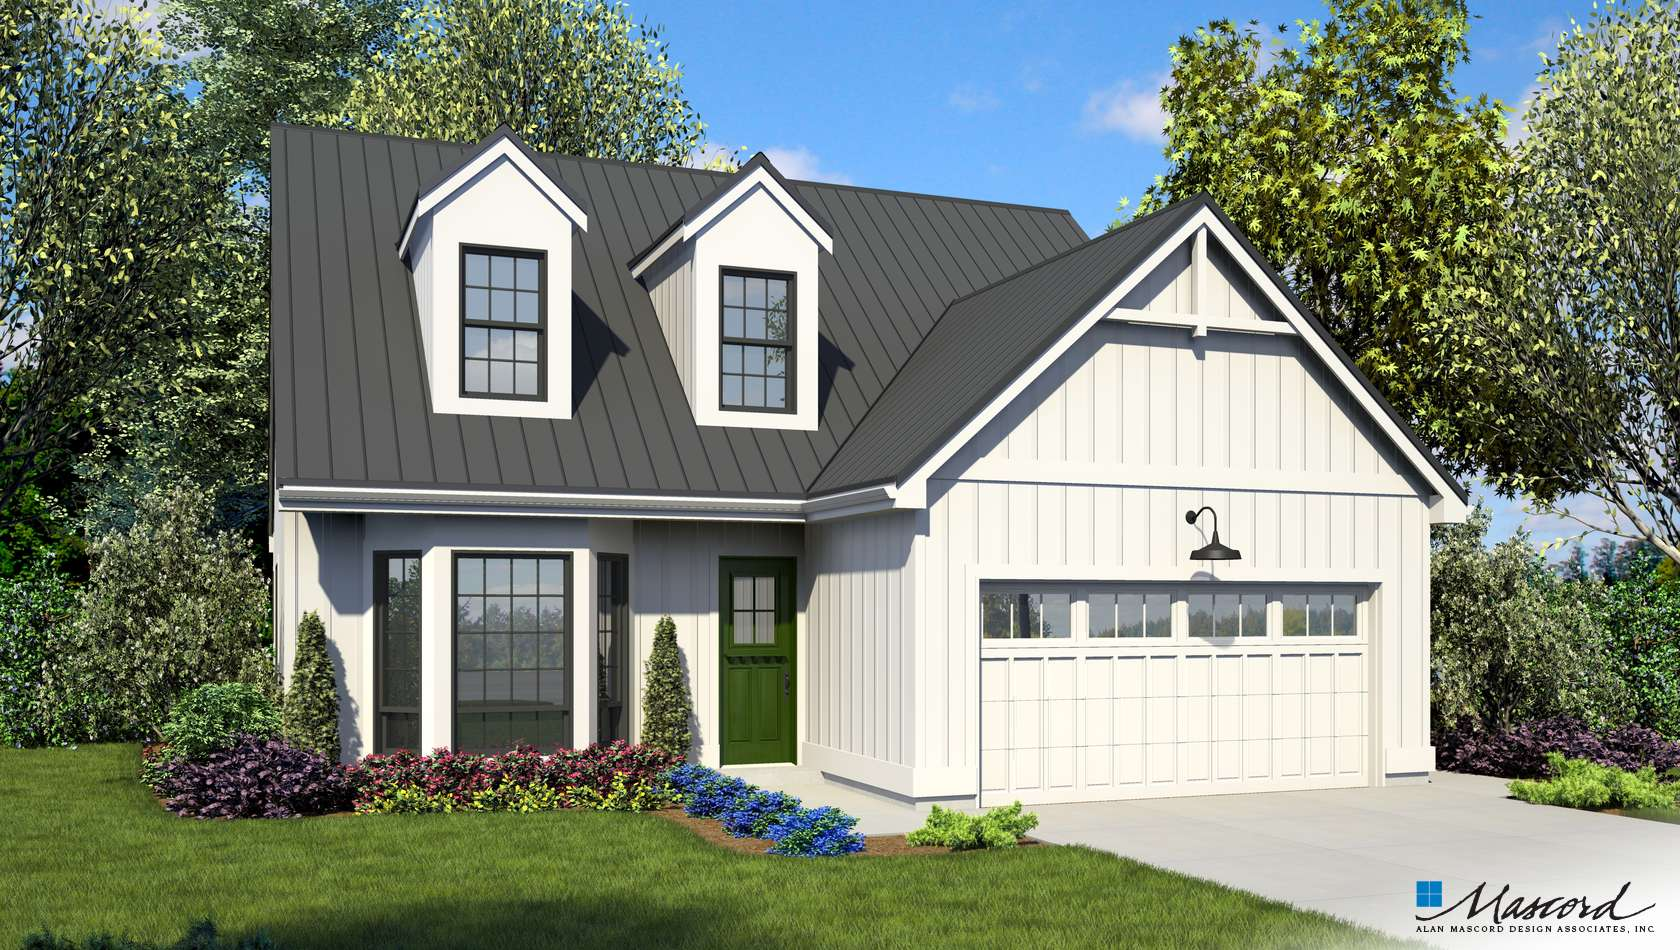 Main image for house plan B2106: The Hadley